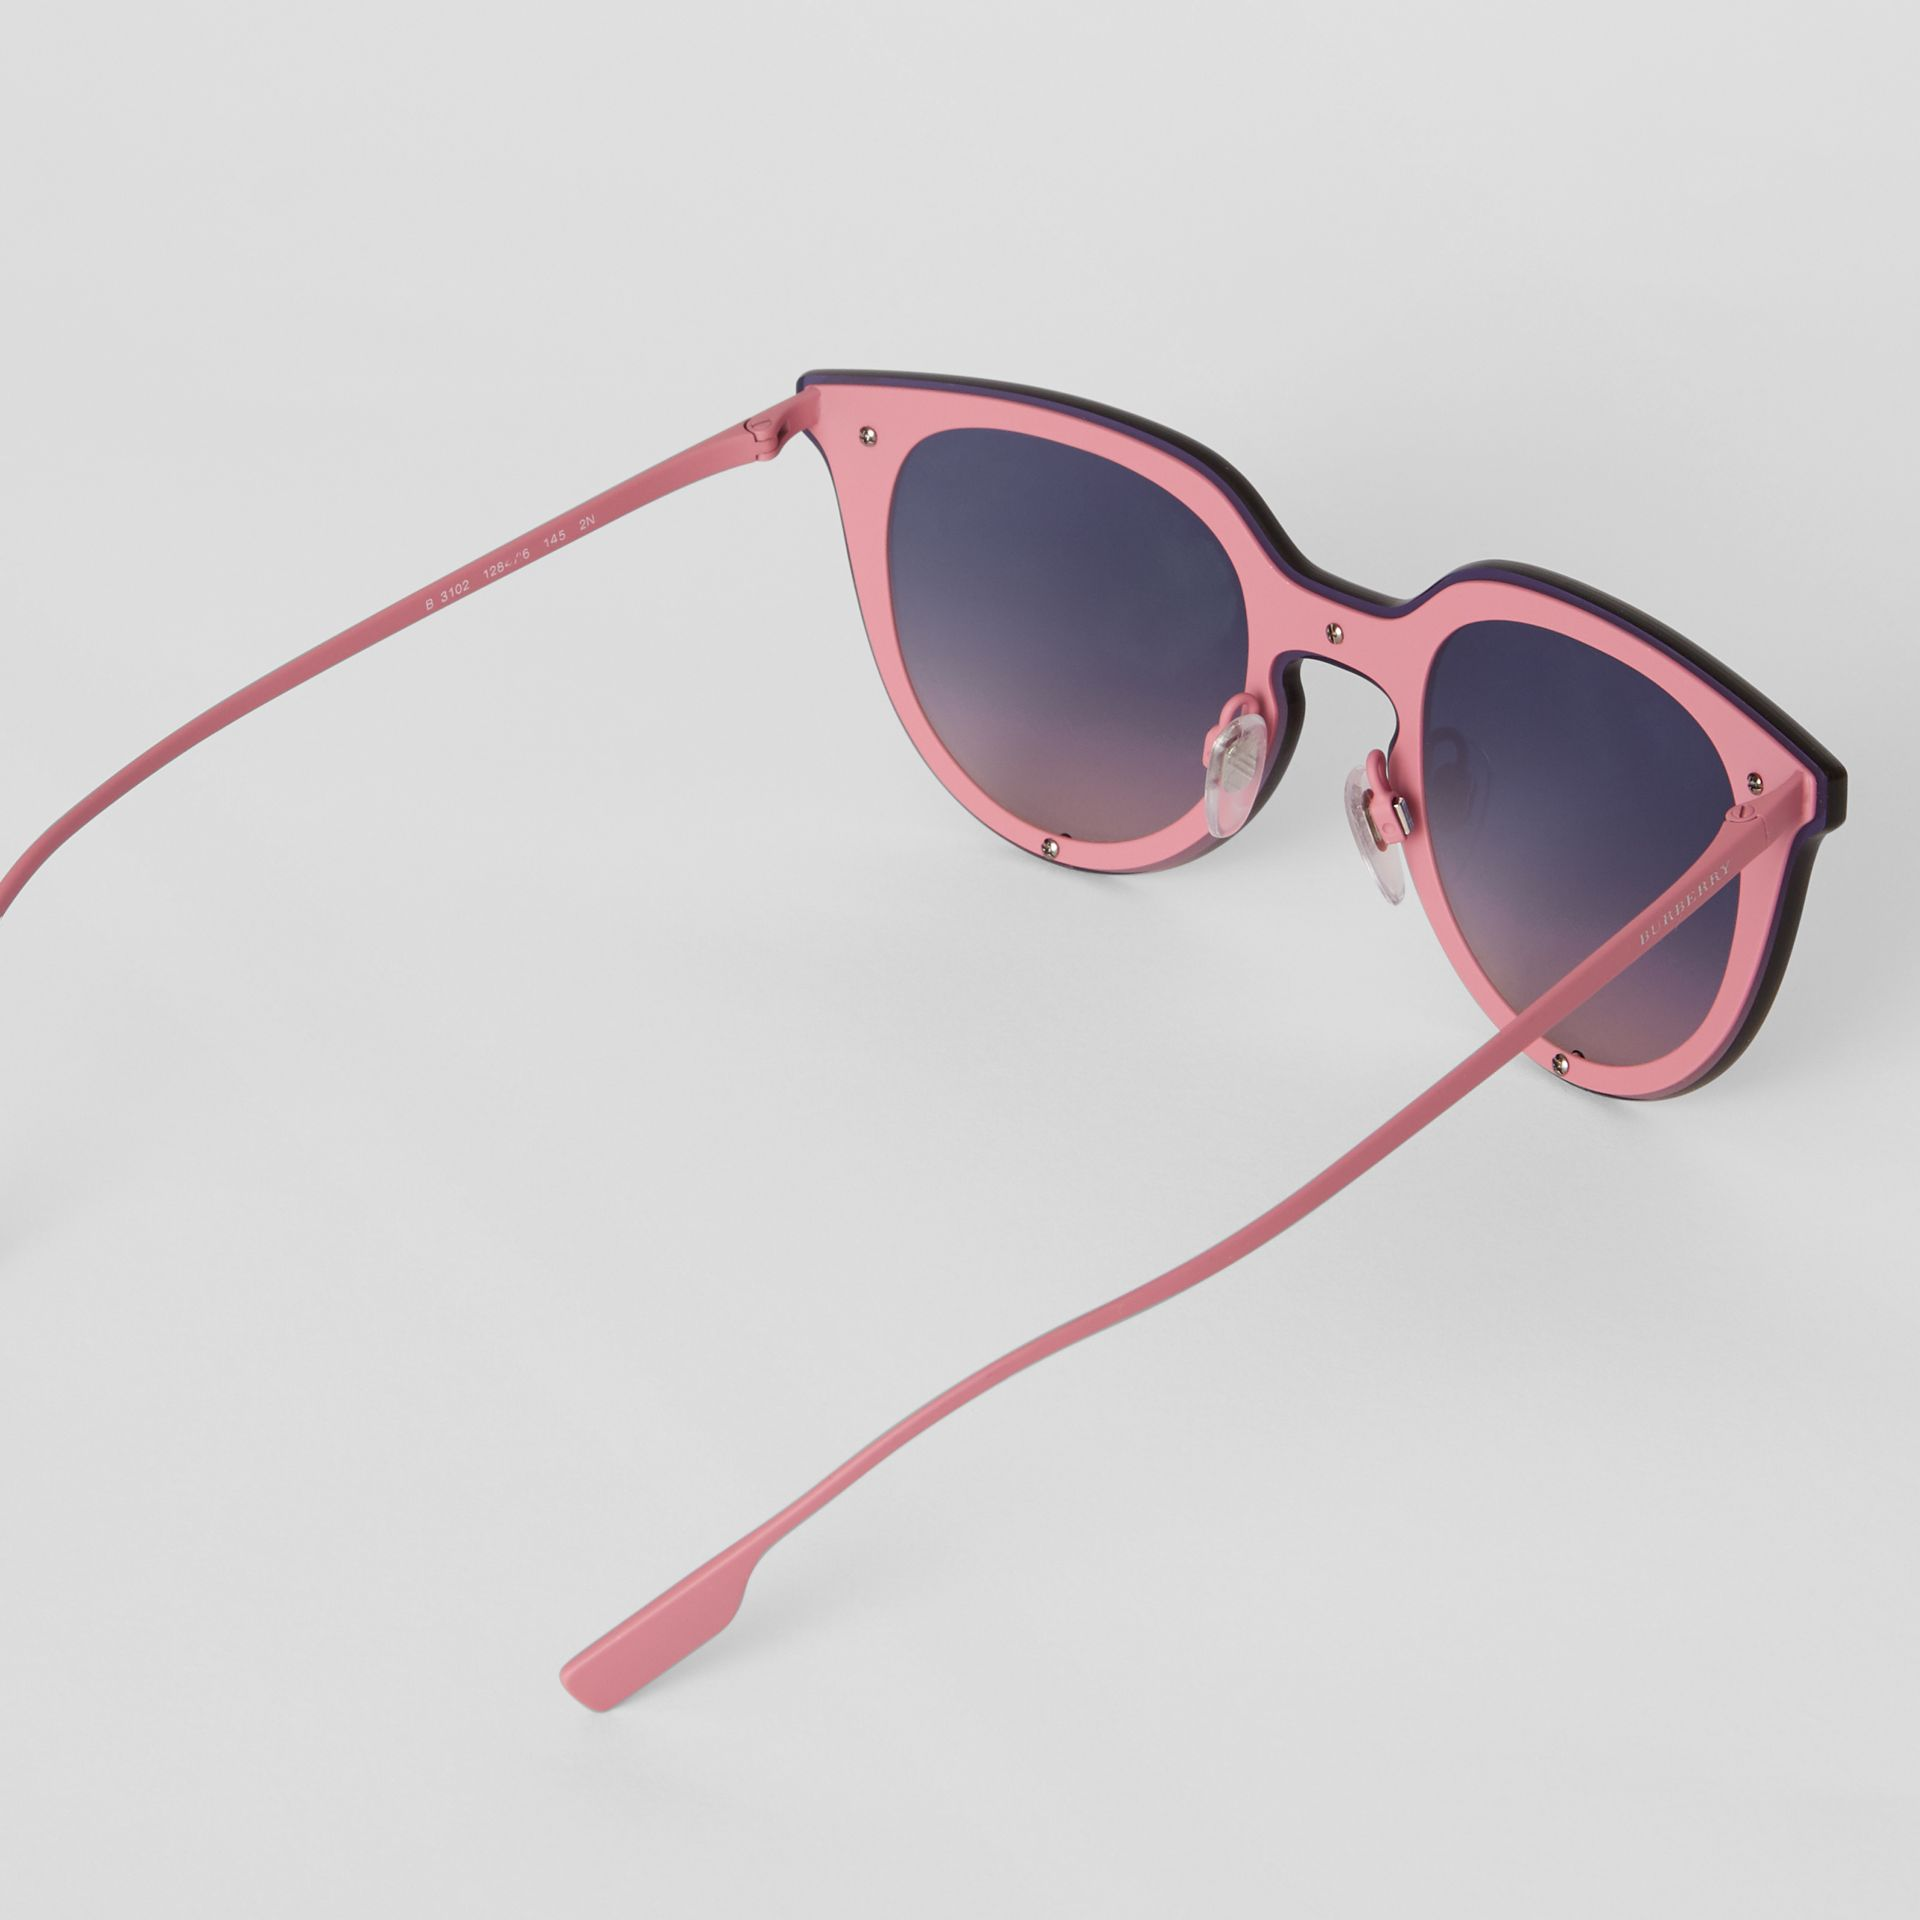 Keyhole Round Frame Shield Sunglasses in Pink - Women | Burberry - gallery image 4